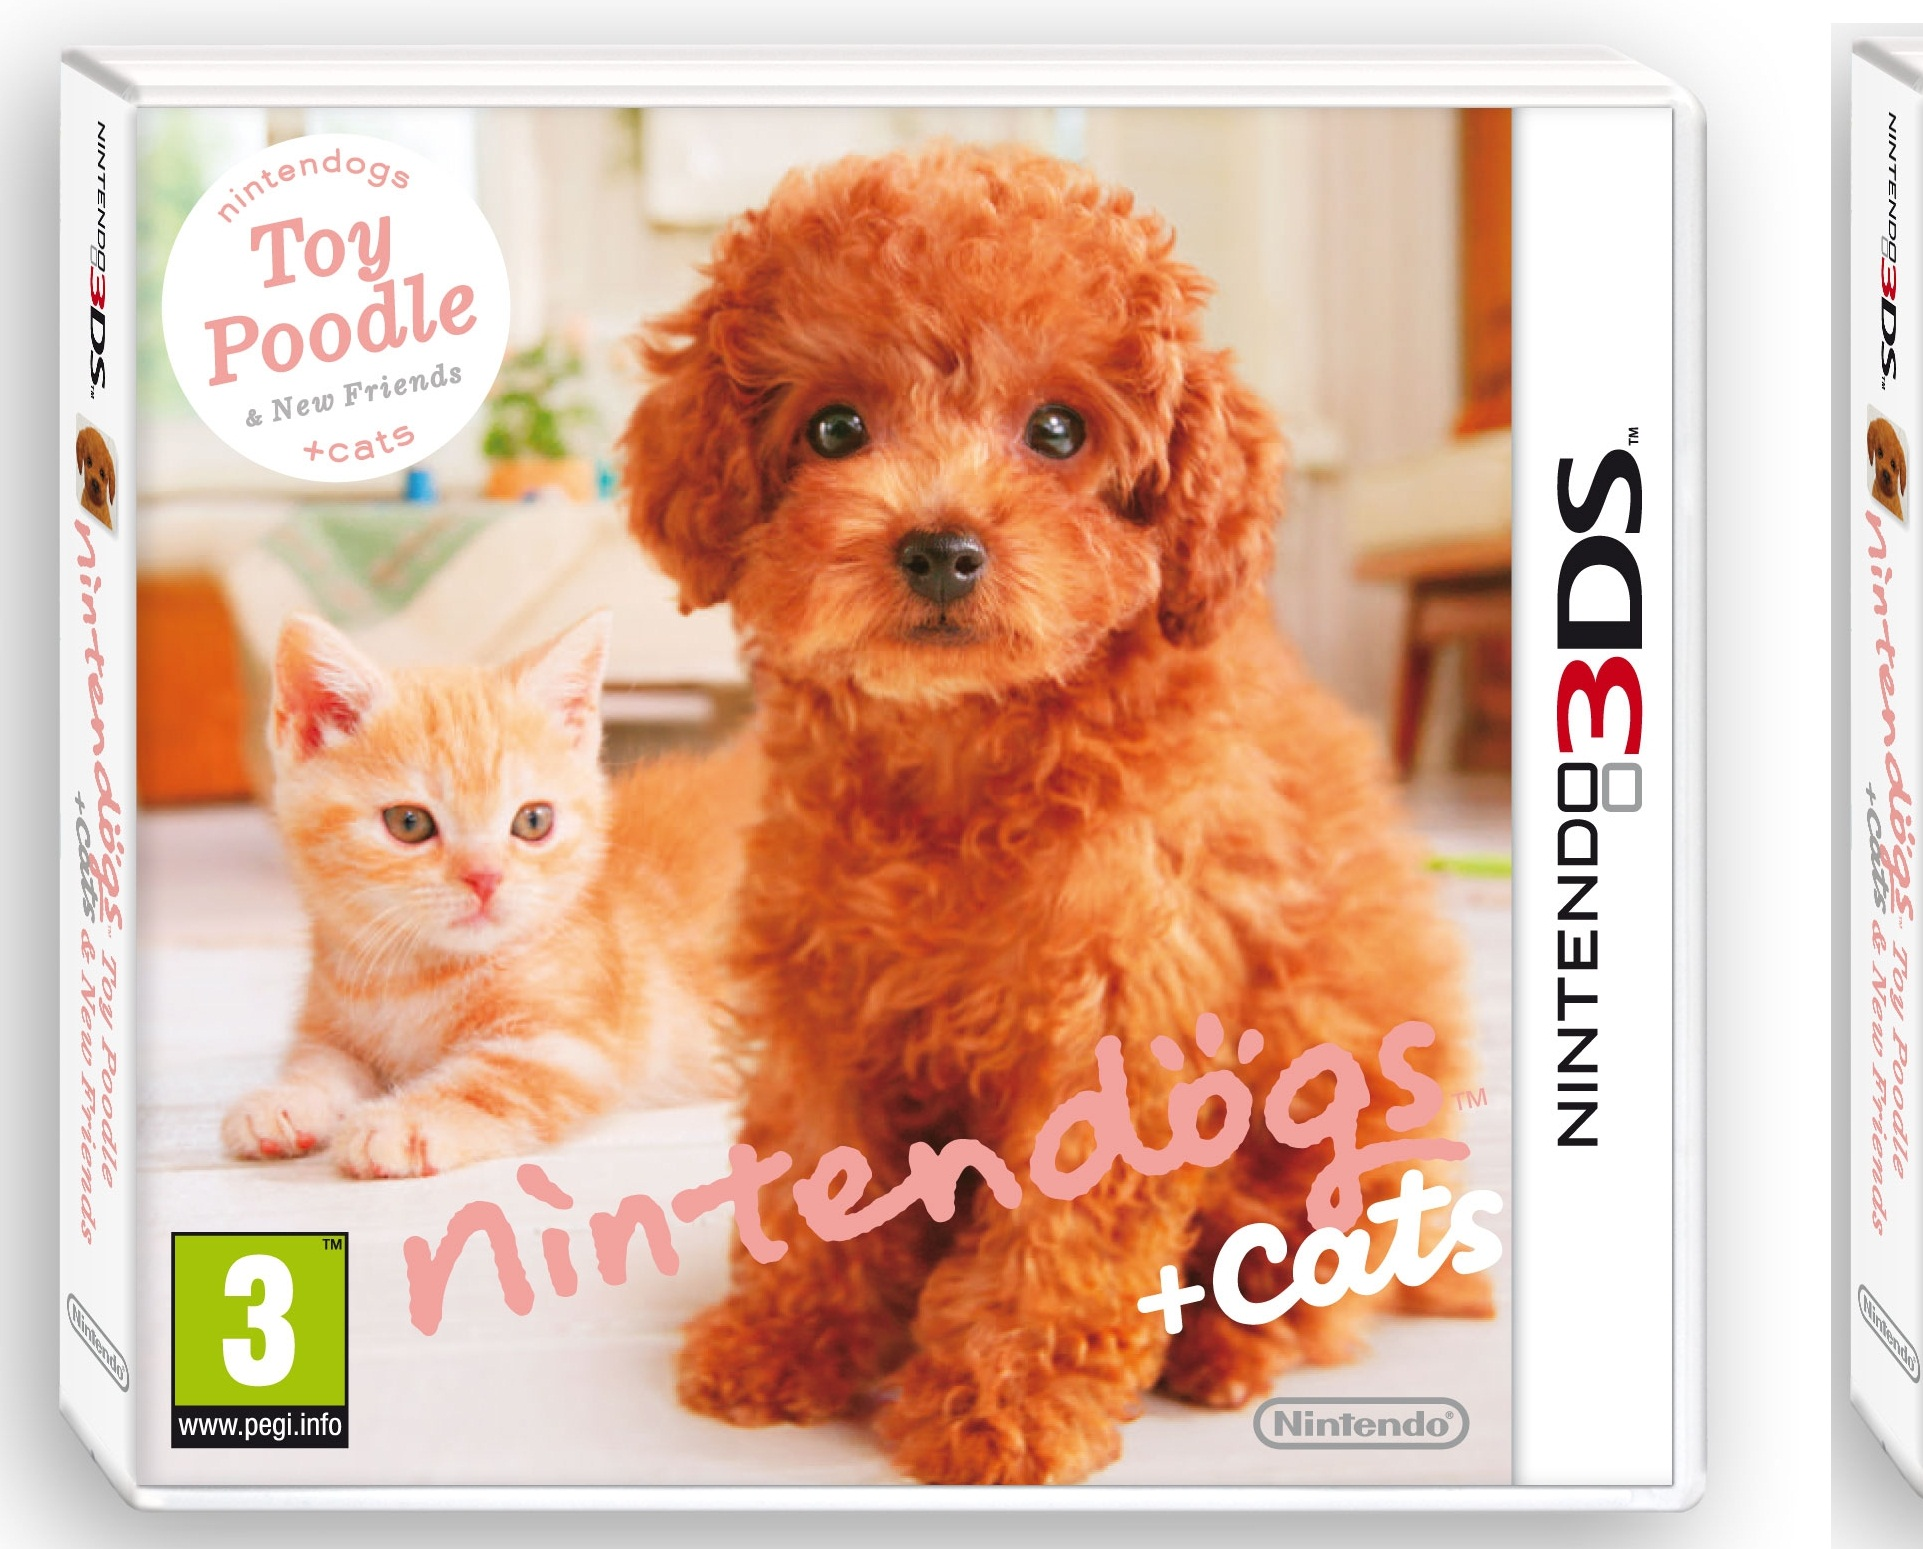 Nintendogs And Cats Tips